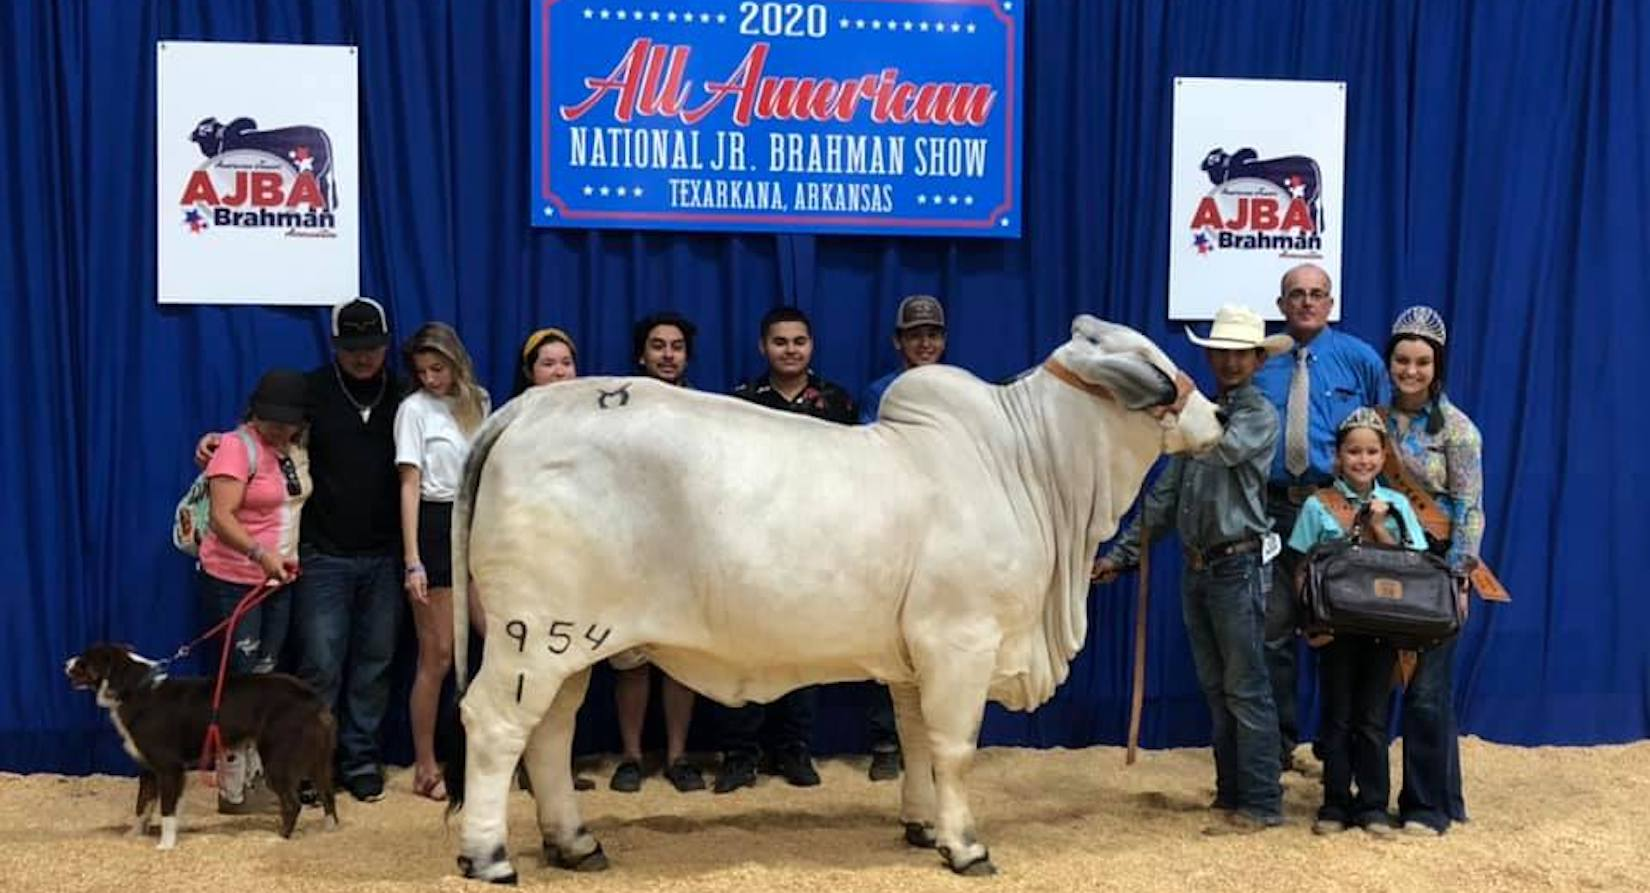 Moreno Ranches proudly announces Brahman heifer, bull wins on last day of All-American Junior Show